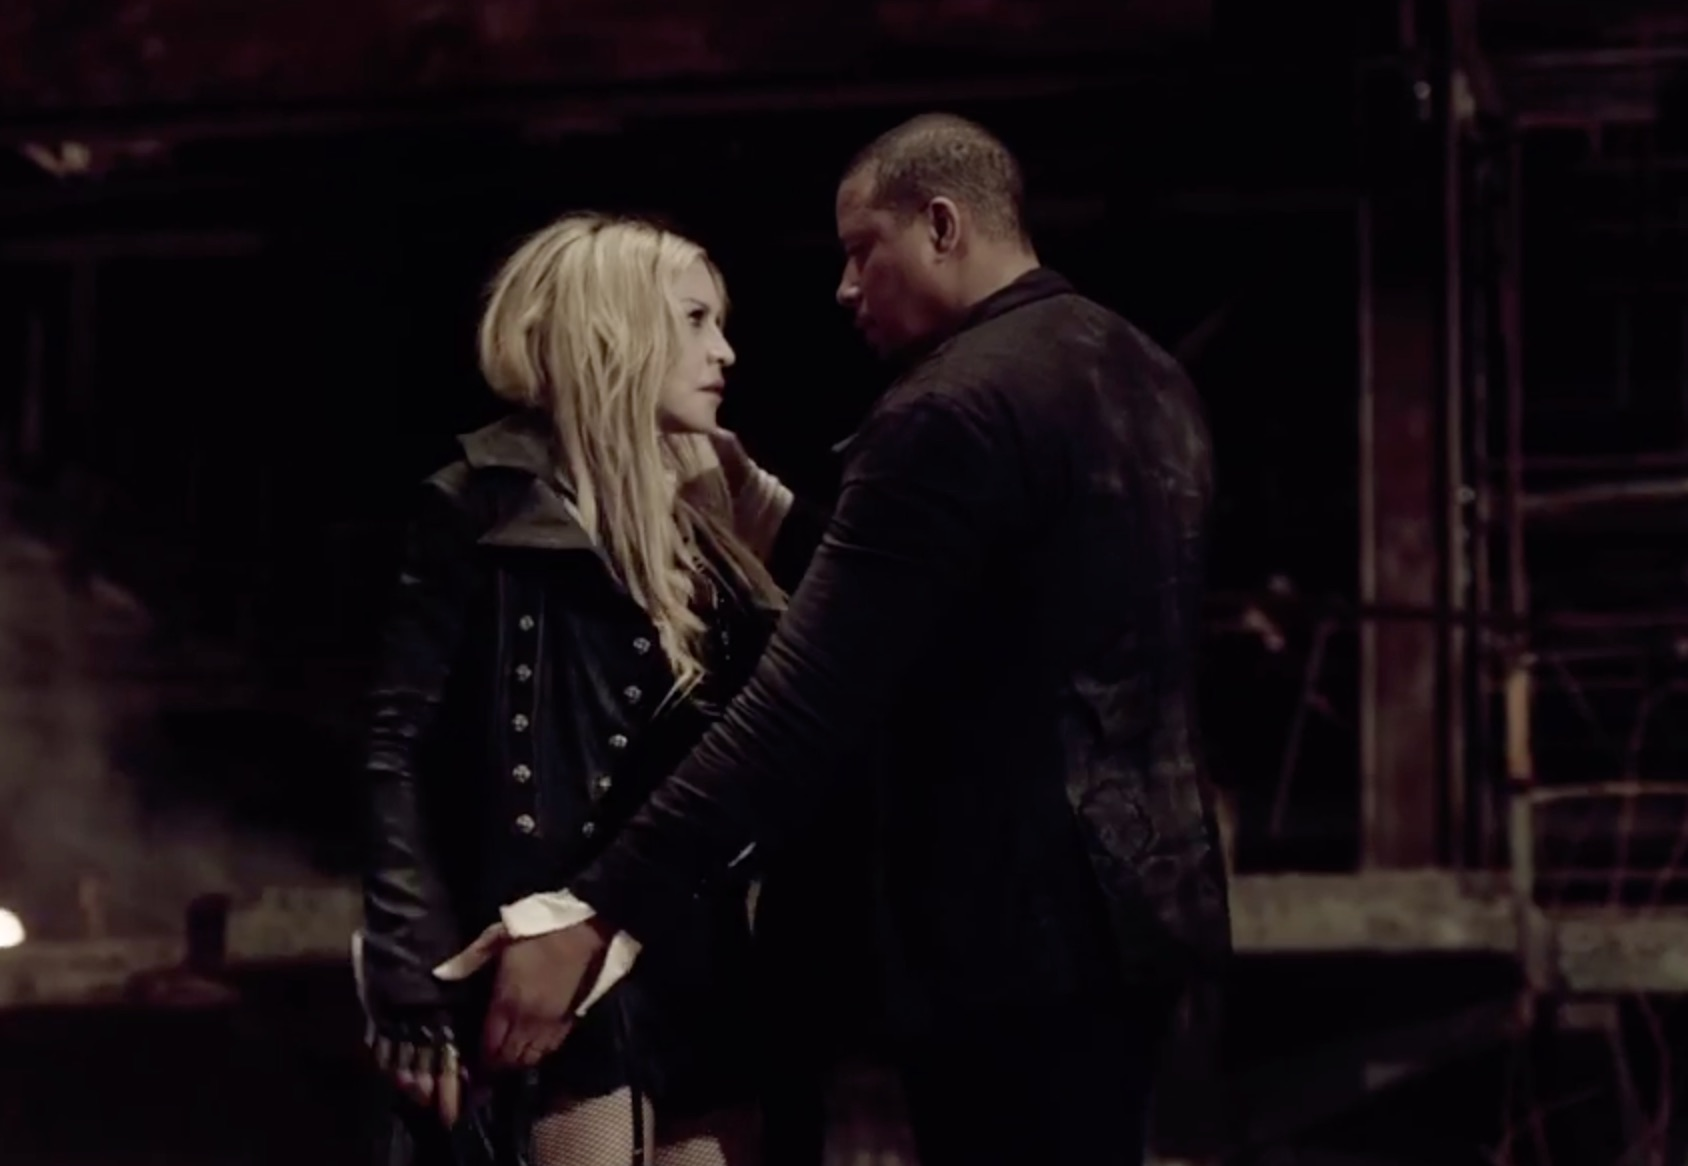 Madonna's new video for 'Ghosttown' is here and so is Terrence Howard